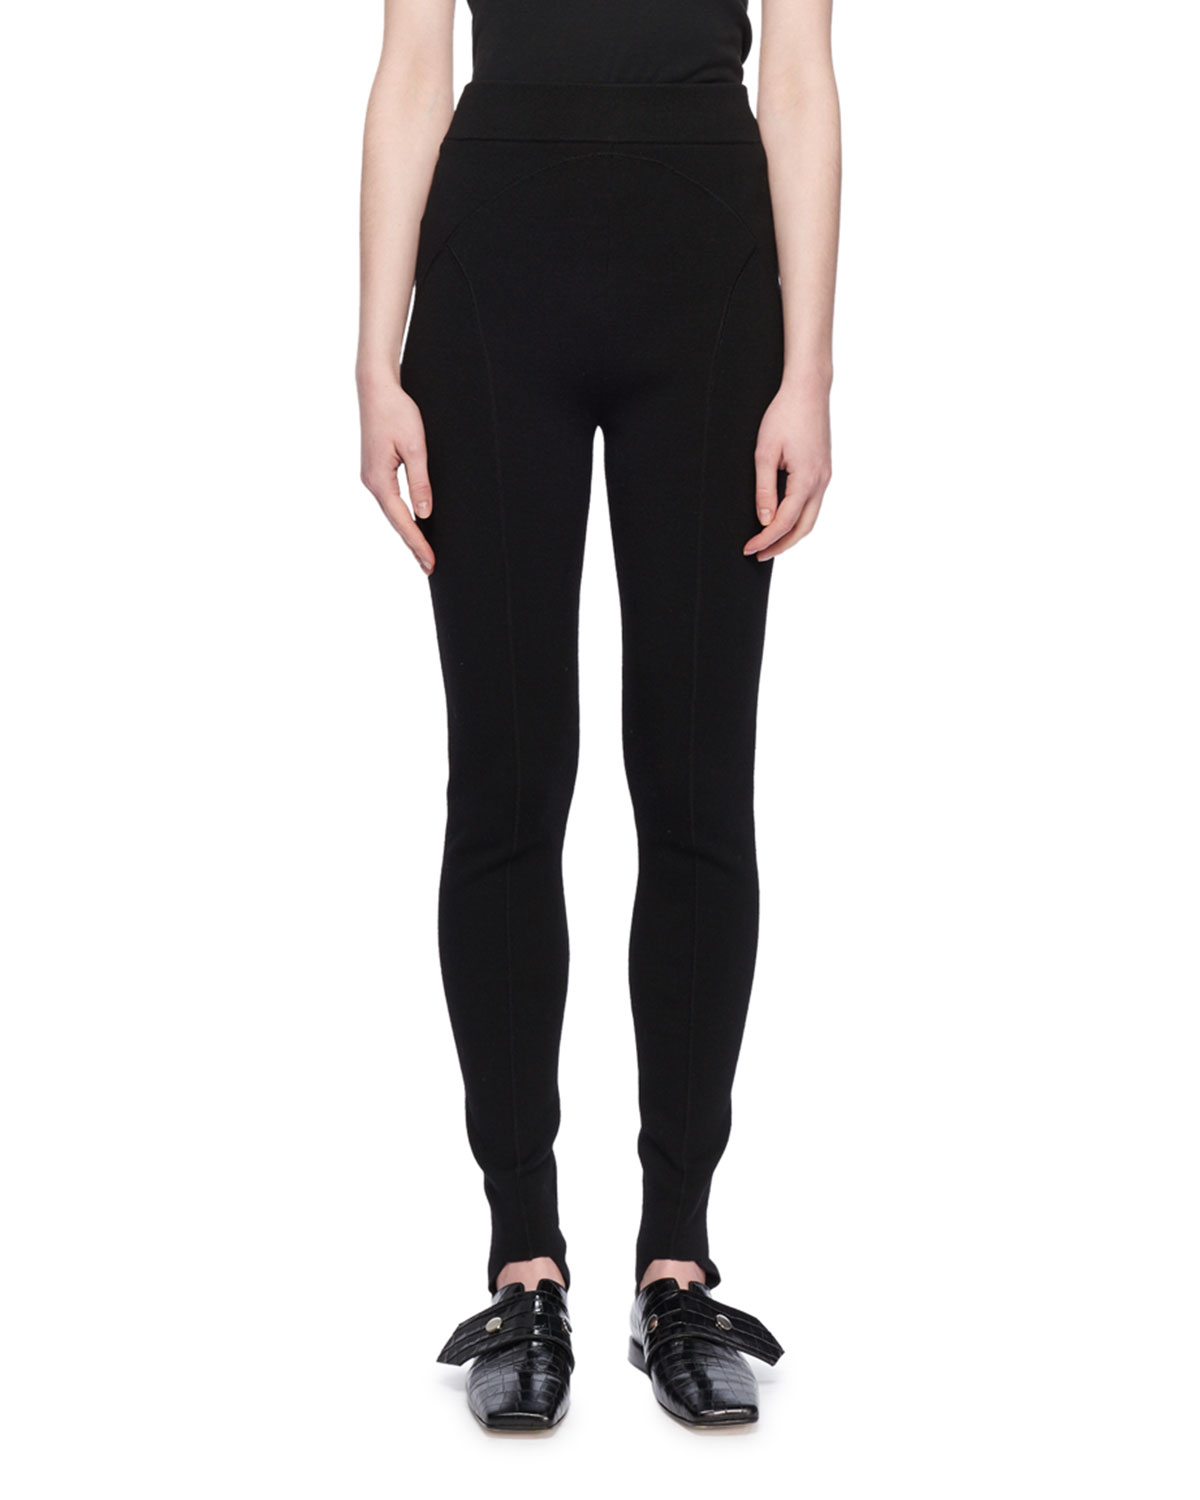 Victoria Beckham Pants WOOL-BLEND STIRRUP LEGGINGS